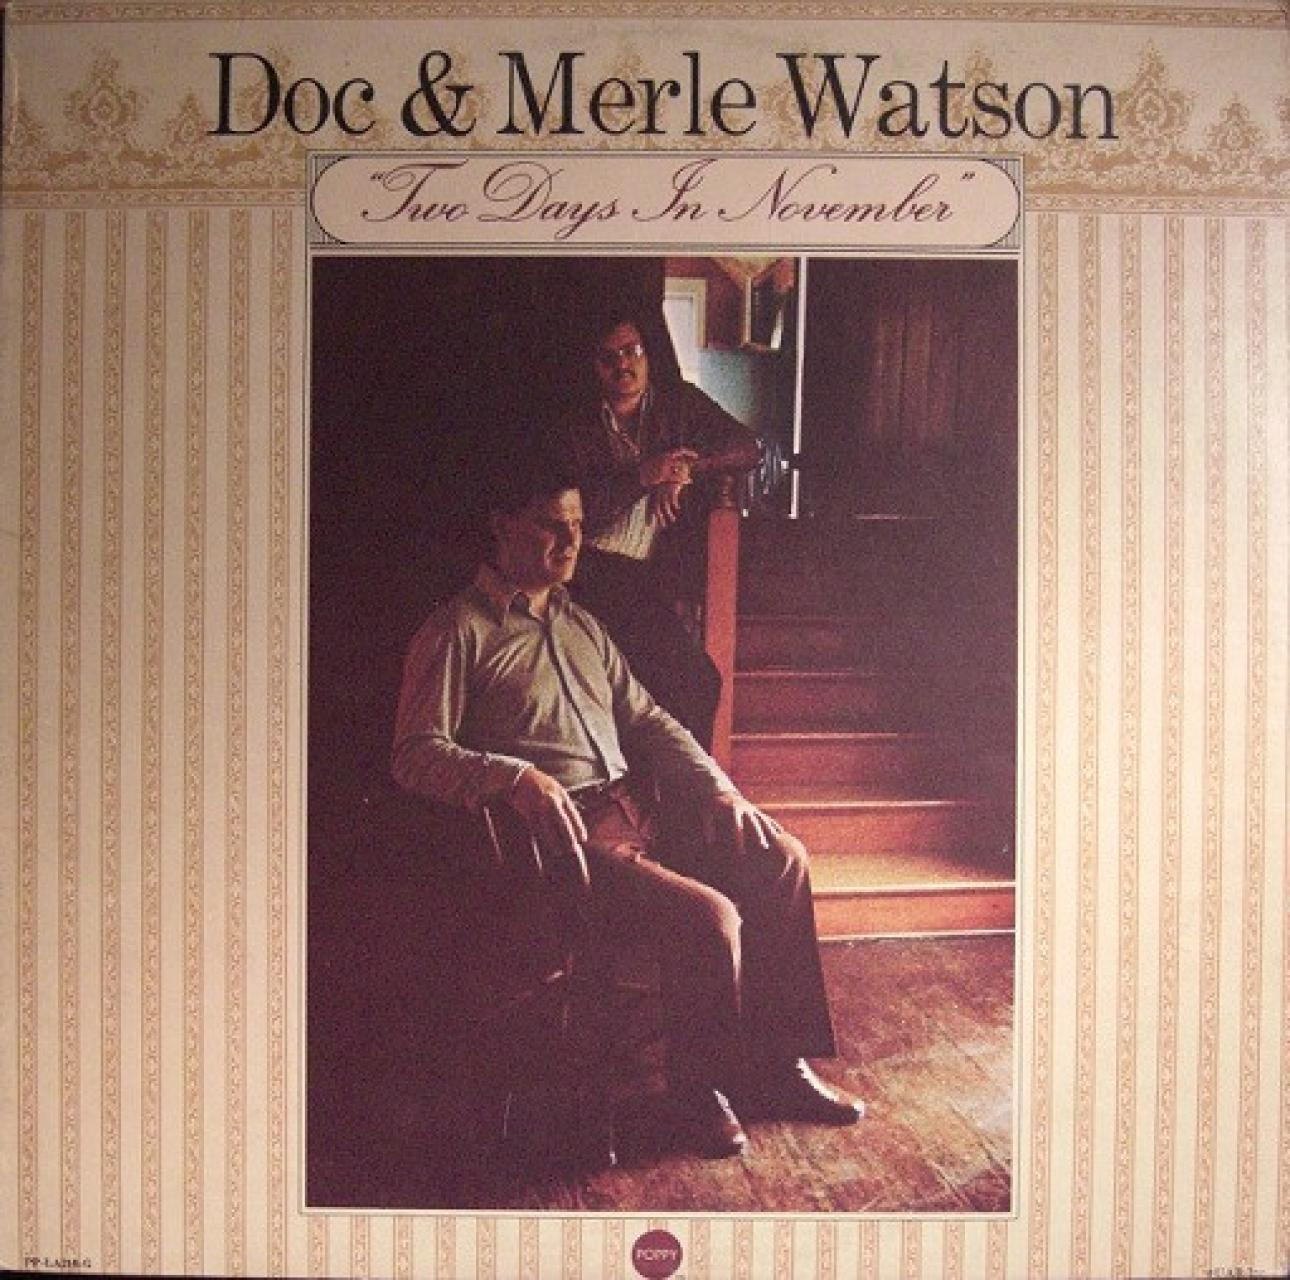 Doc & Merle Watson - Two Days in November